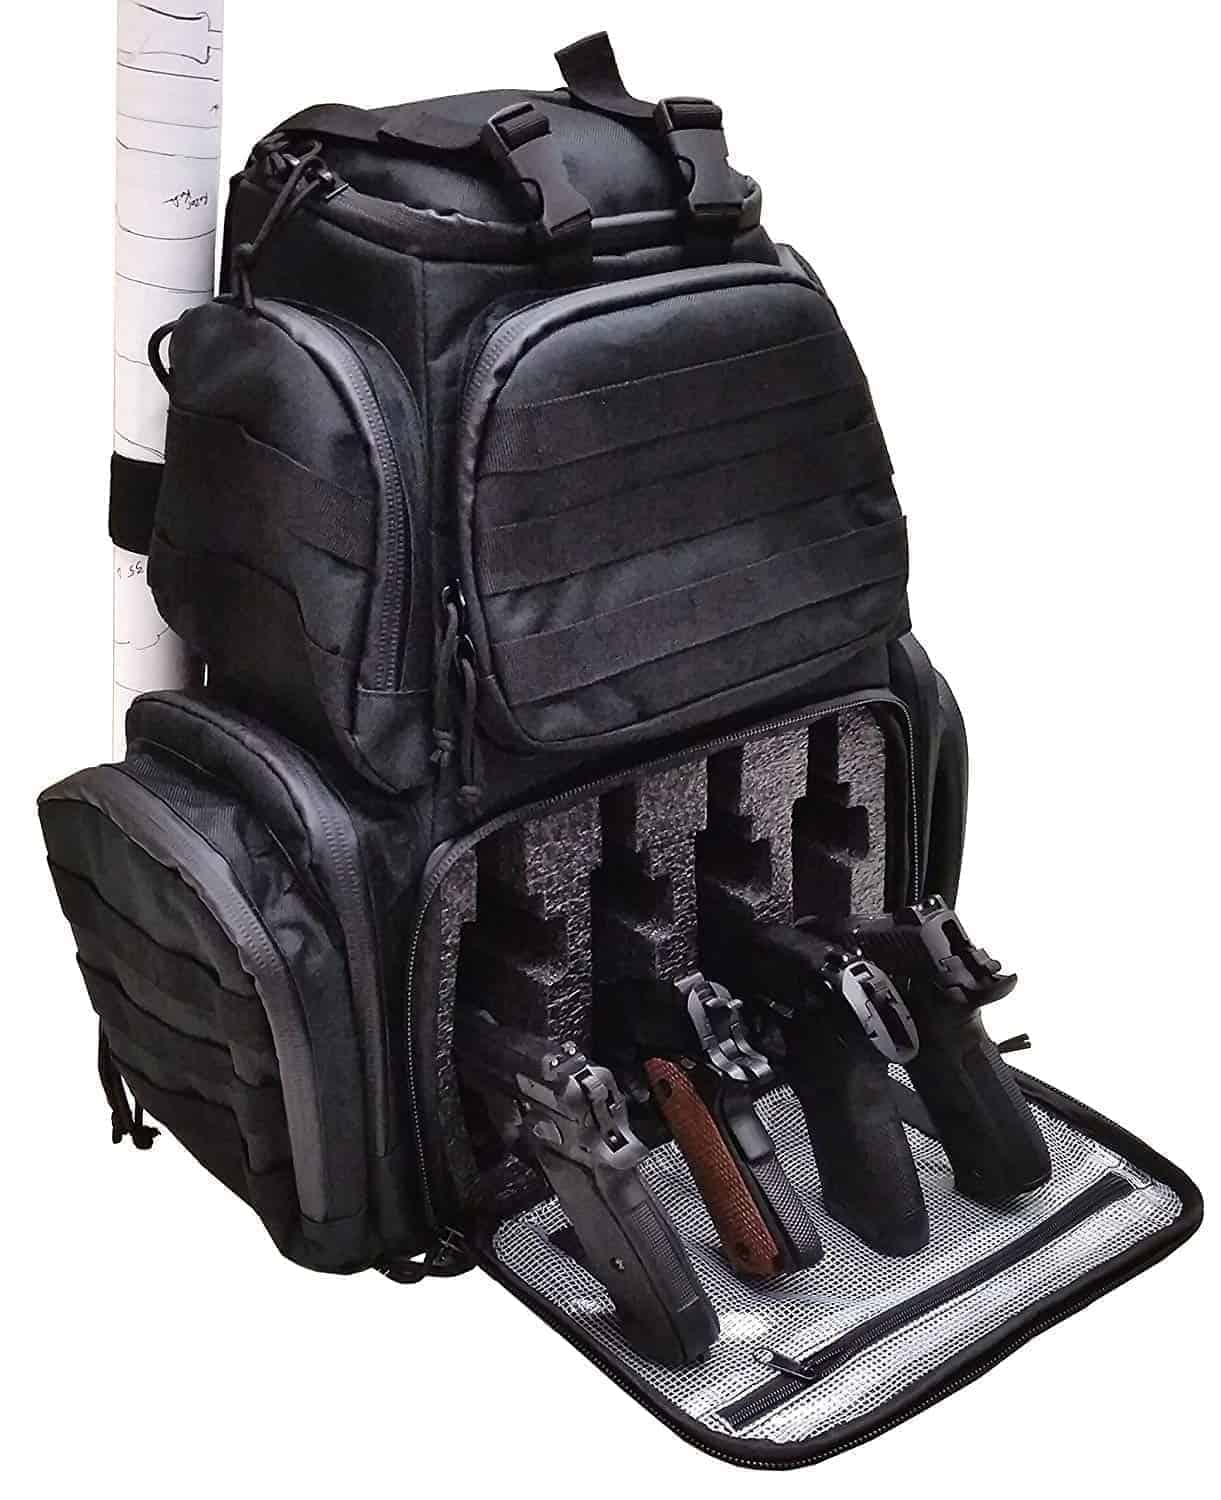 17 Unique And Cool Backpacks For Adults & Grownups 60